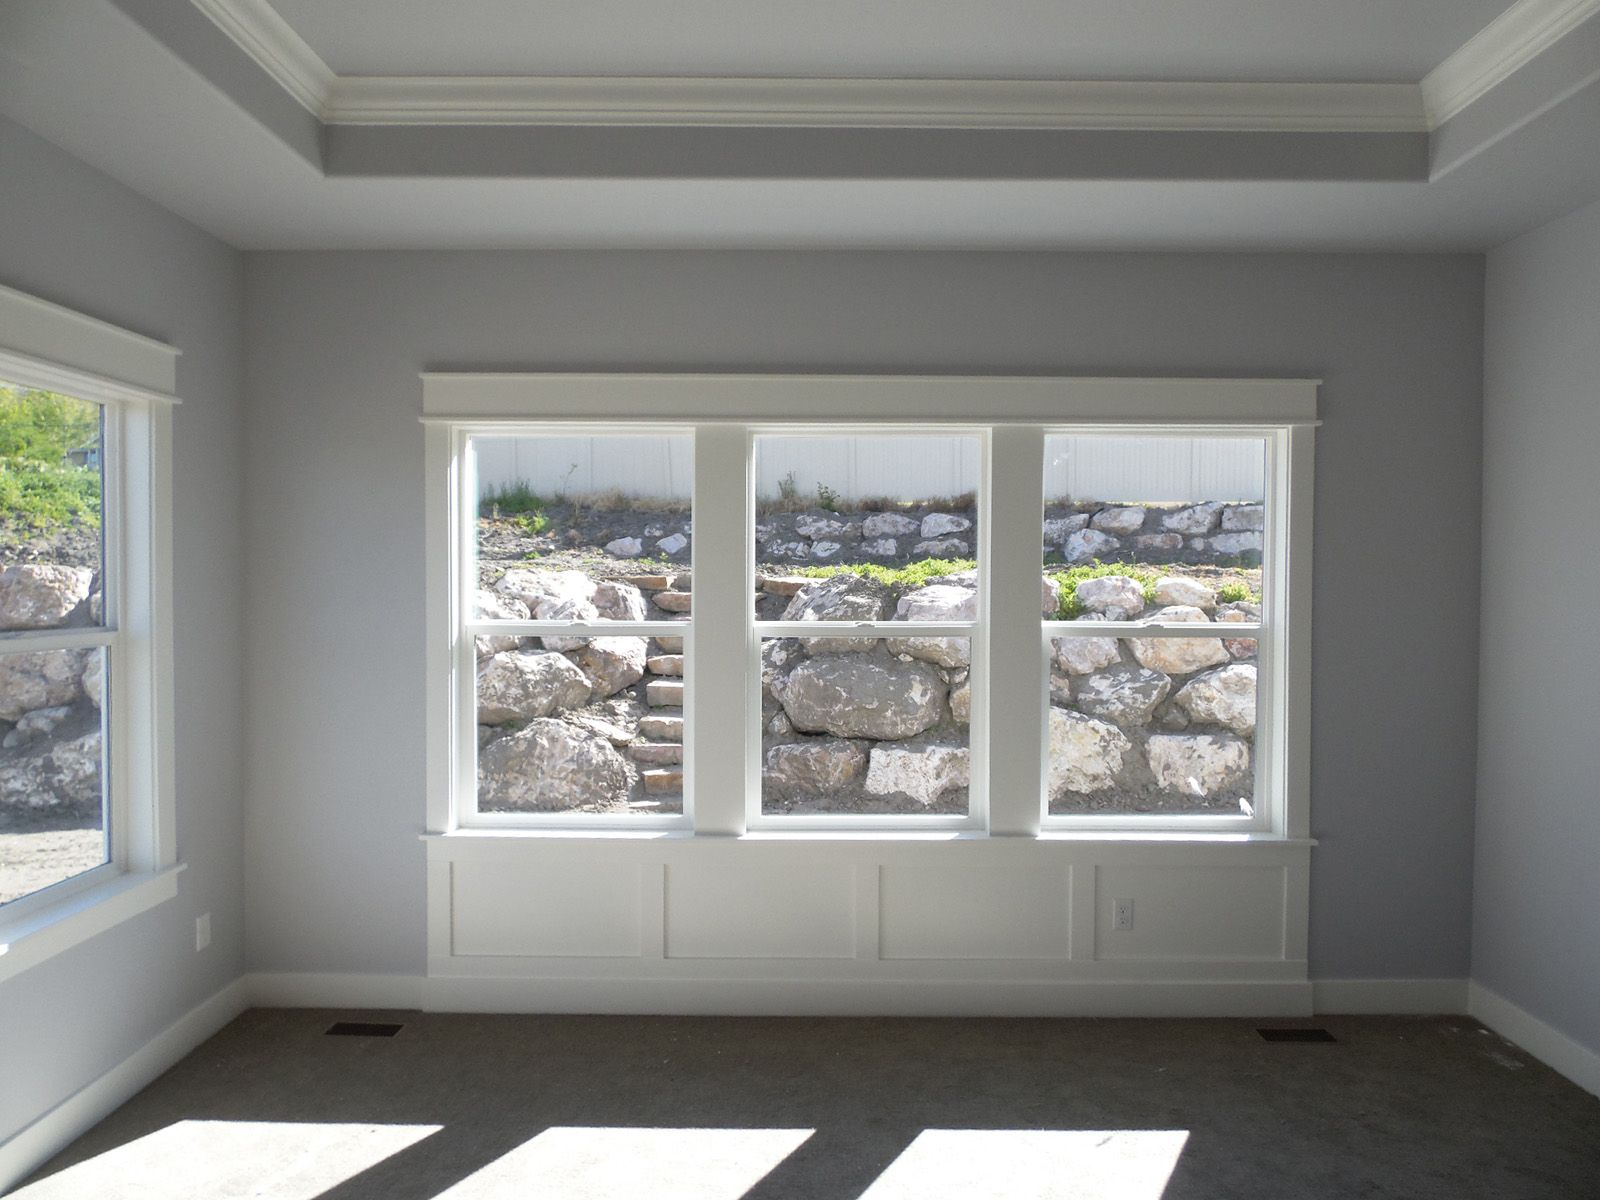 Bar outside kitchen window  windows in master bedroom in bravo home design by symphony homes